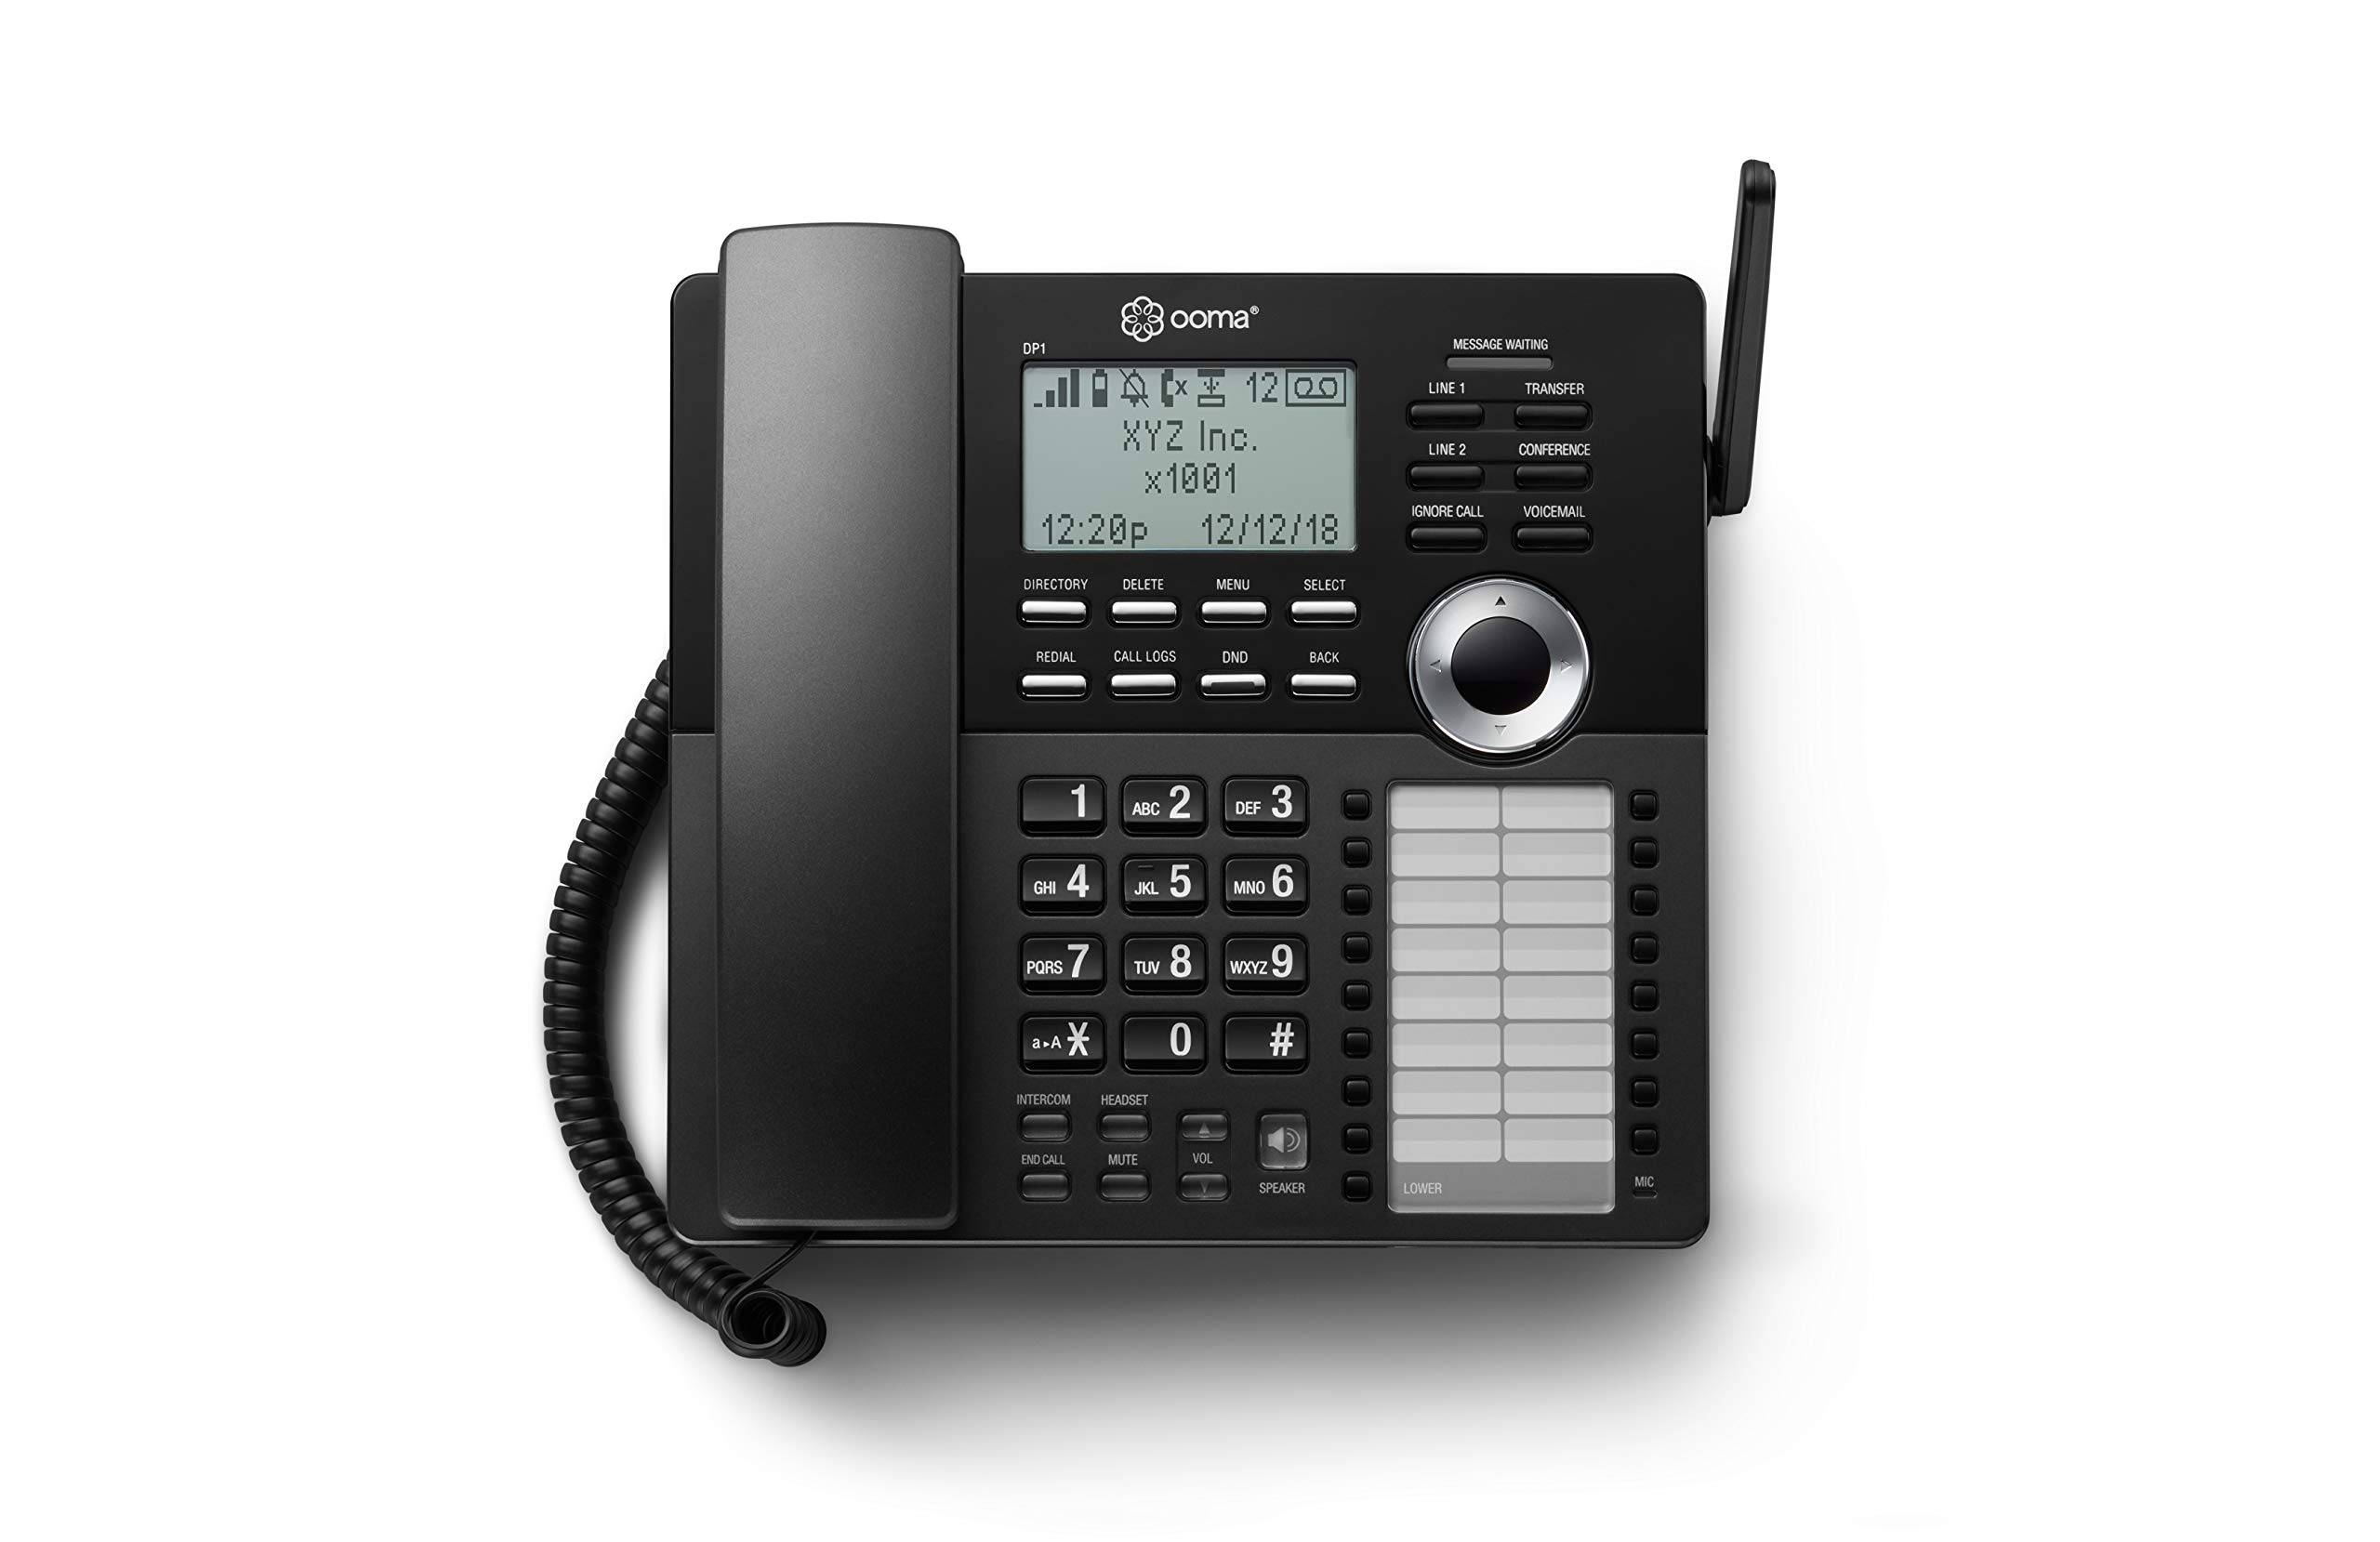 Ooma DP1-T Desk Phone for Home Office, Black by ooma